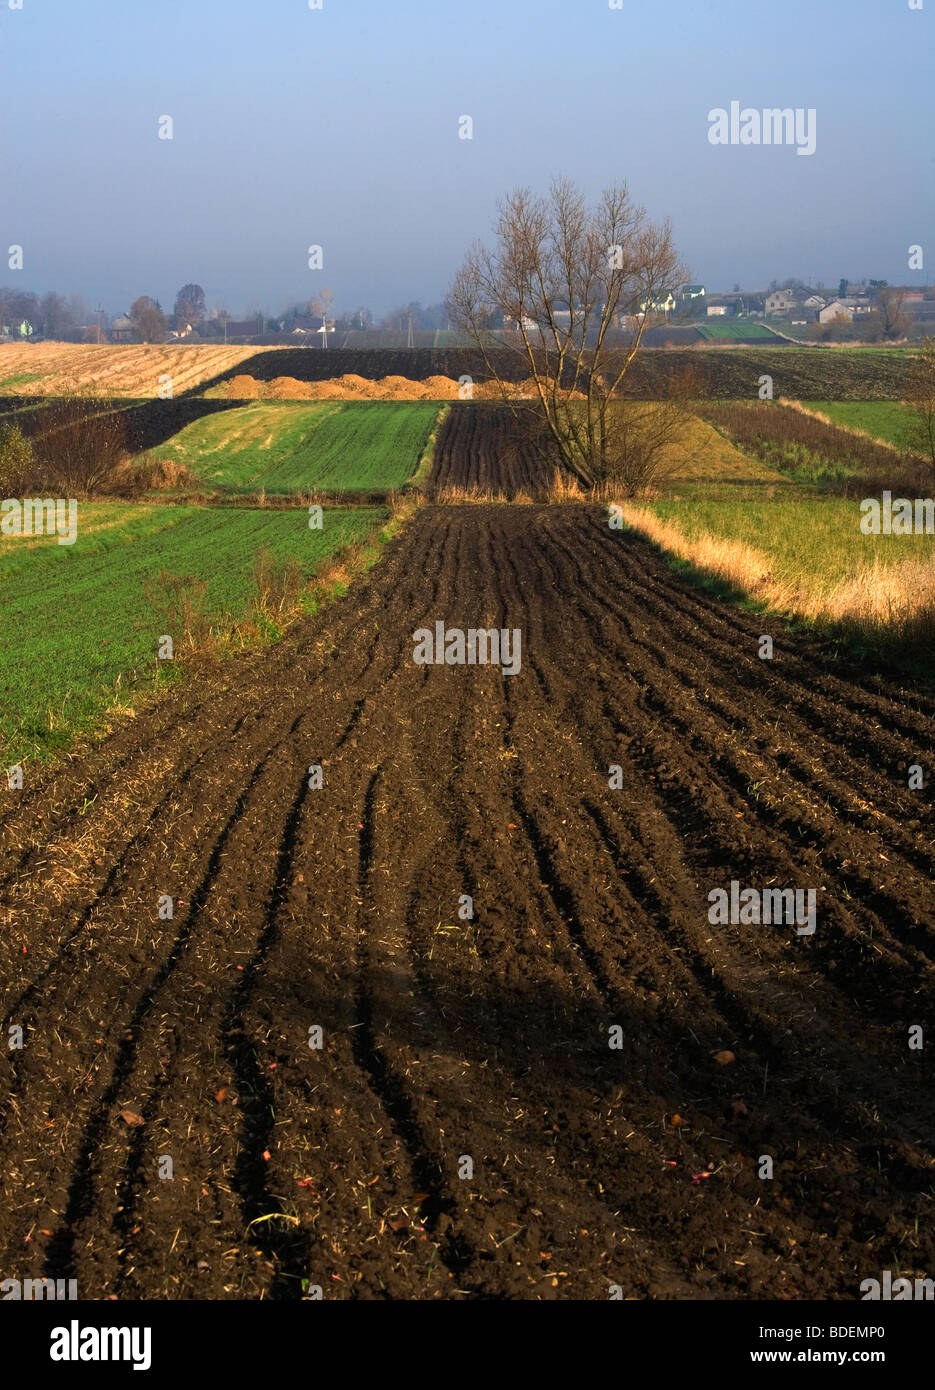 Lesser Poland agriculture - Stock Image